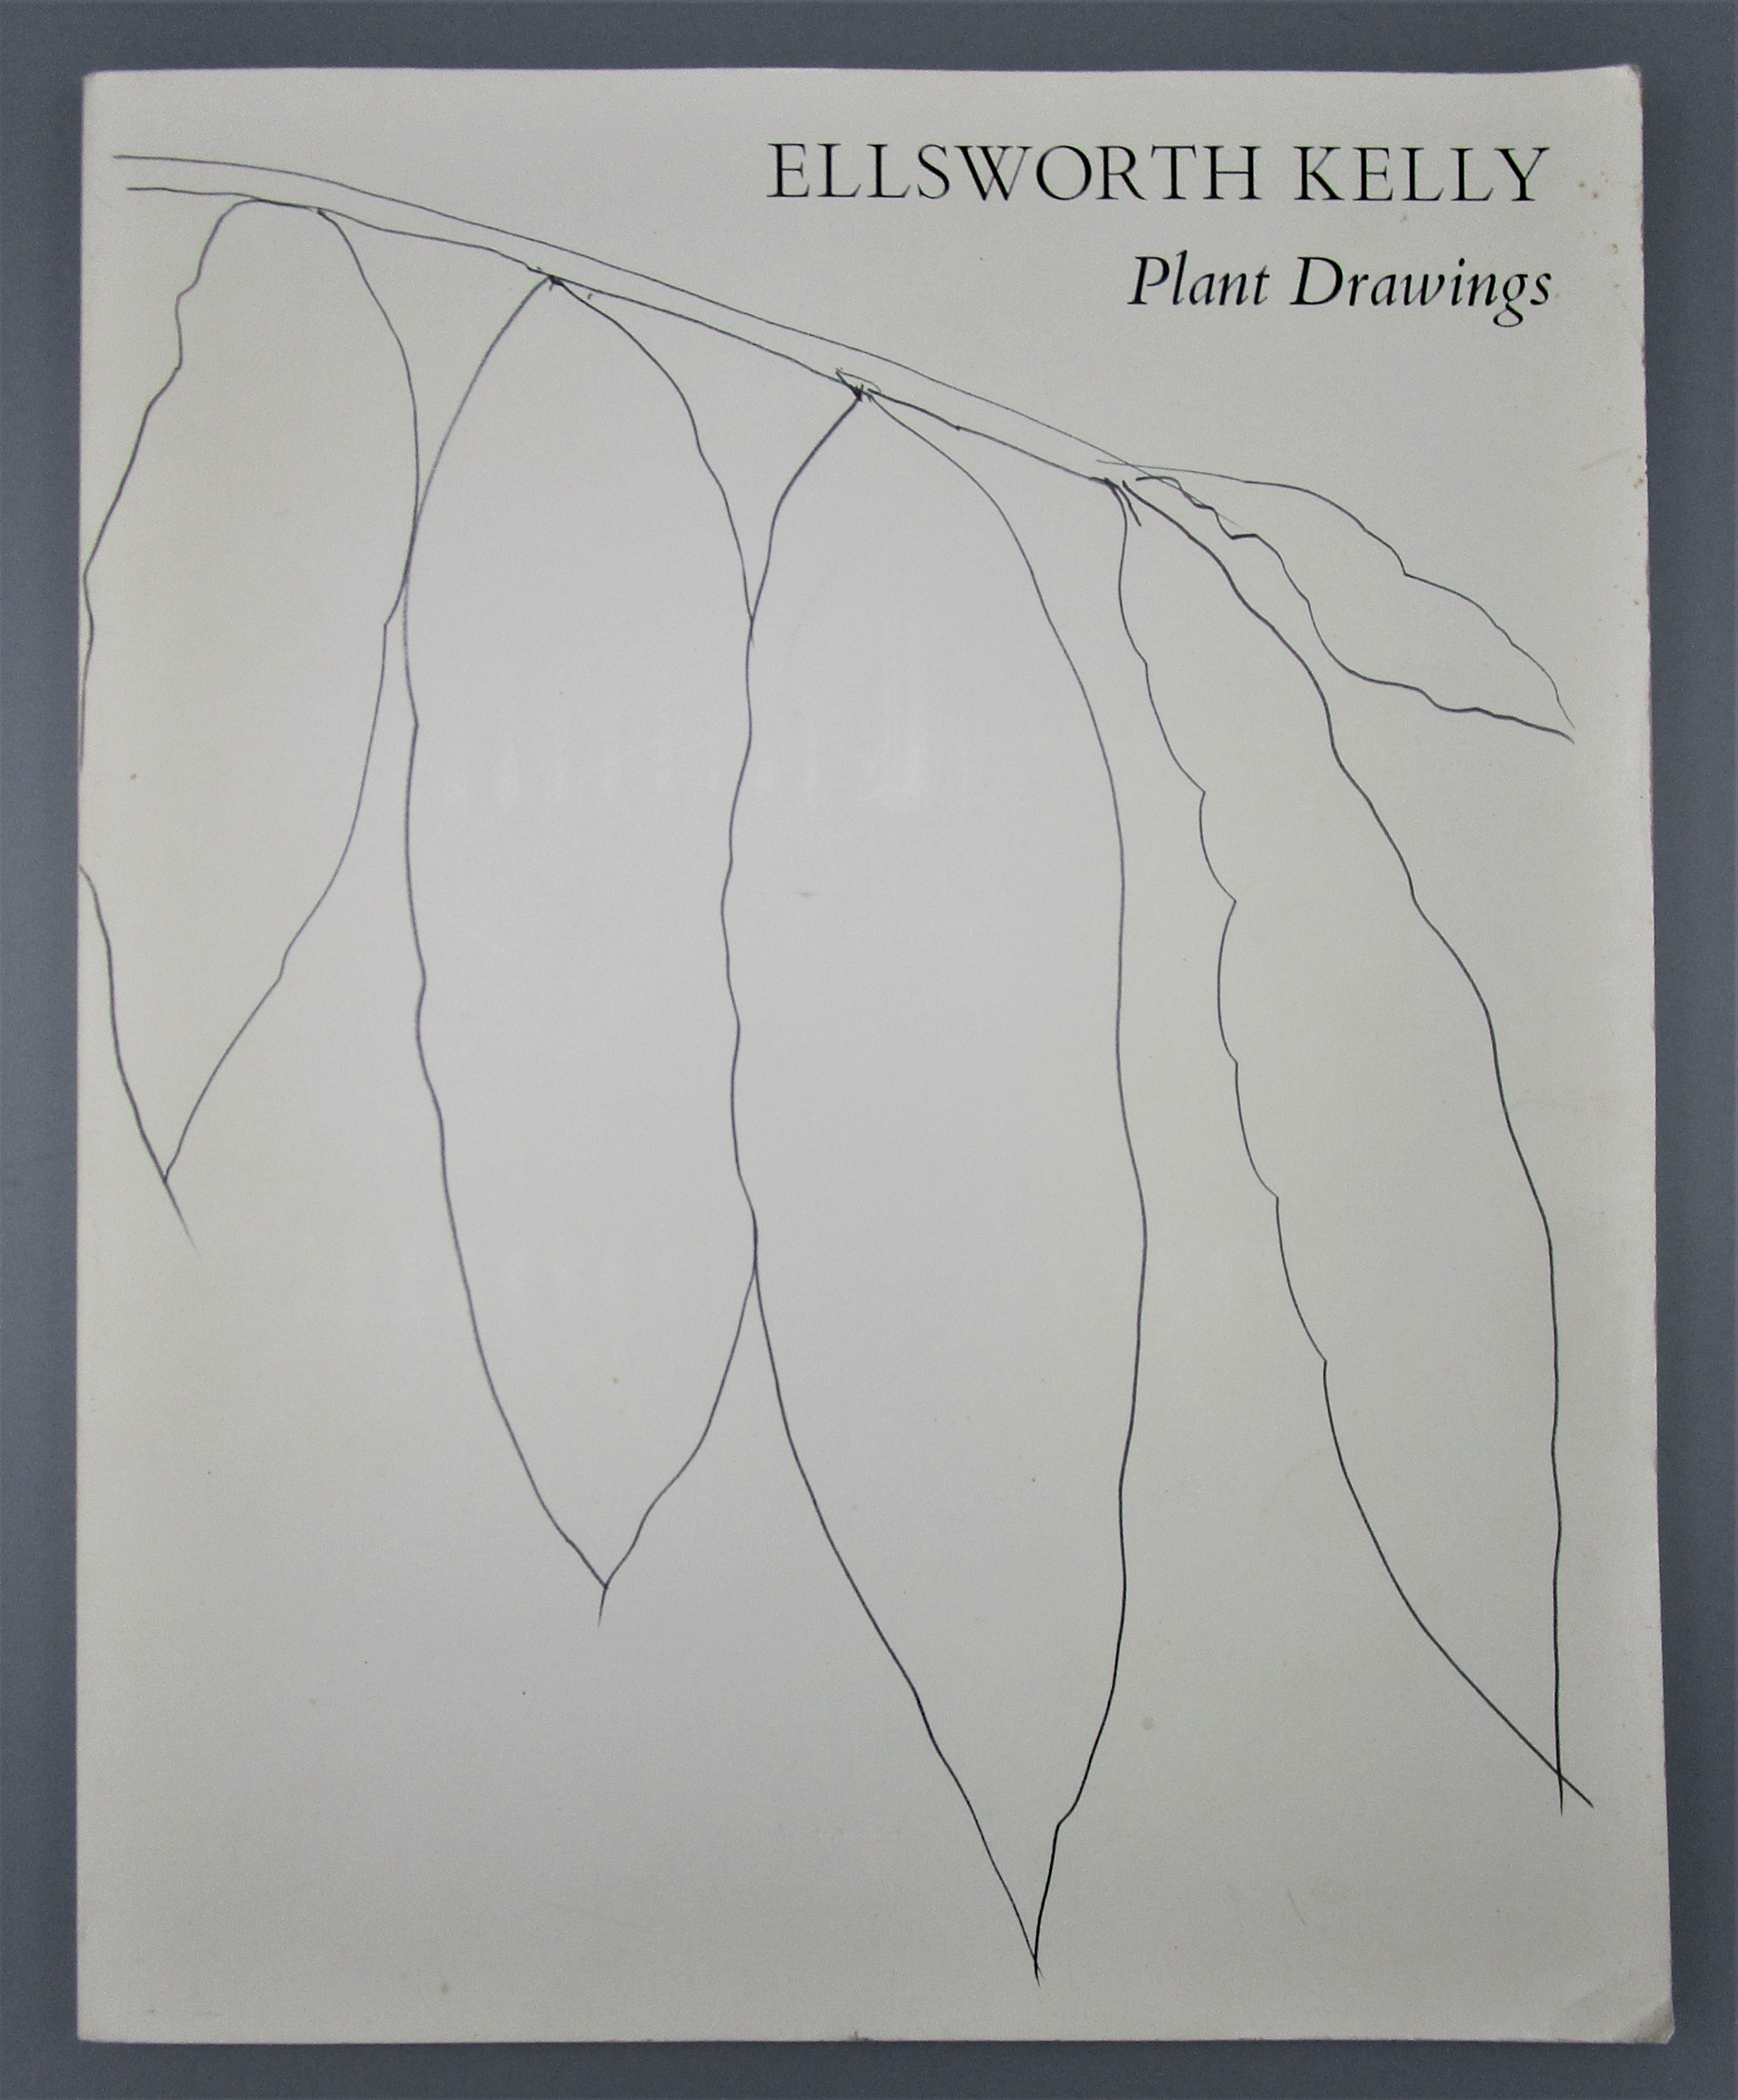 ELLSWORTH KELLY: PLANT DRAWINGS, by John Ashbery - 1992